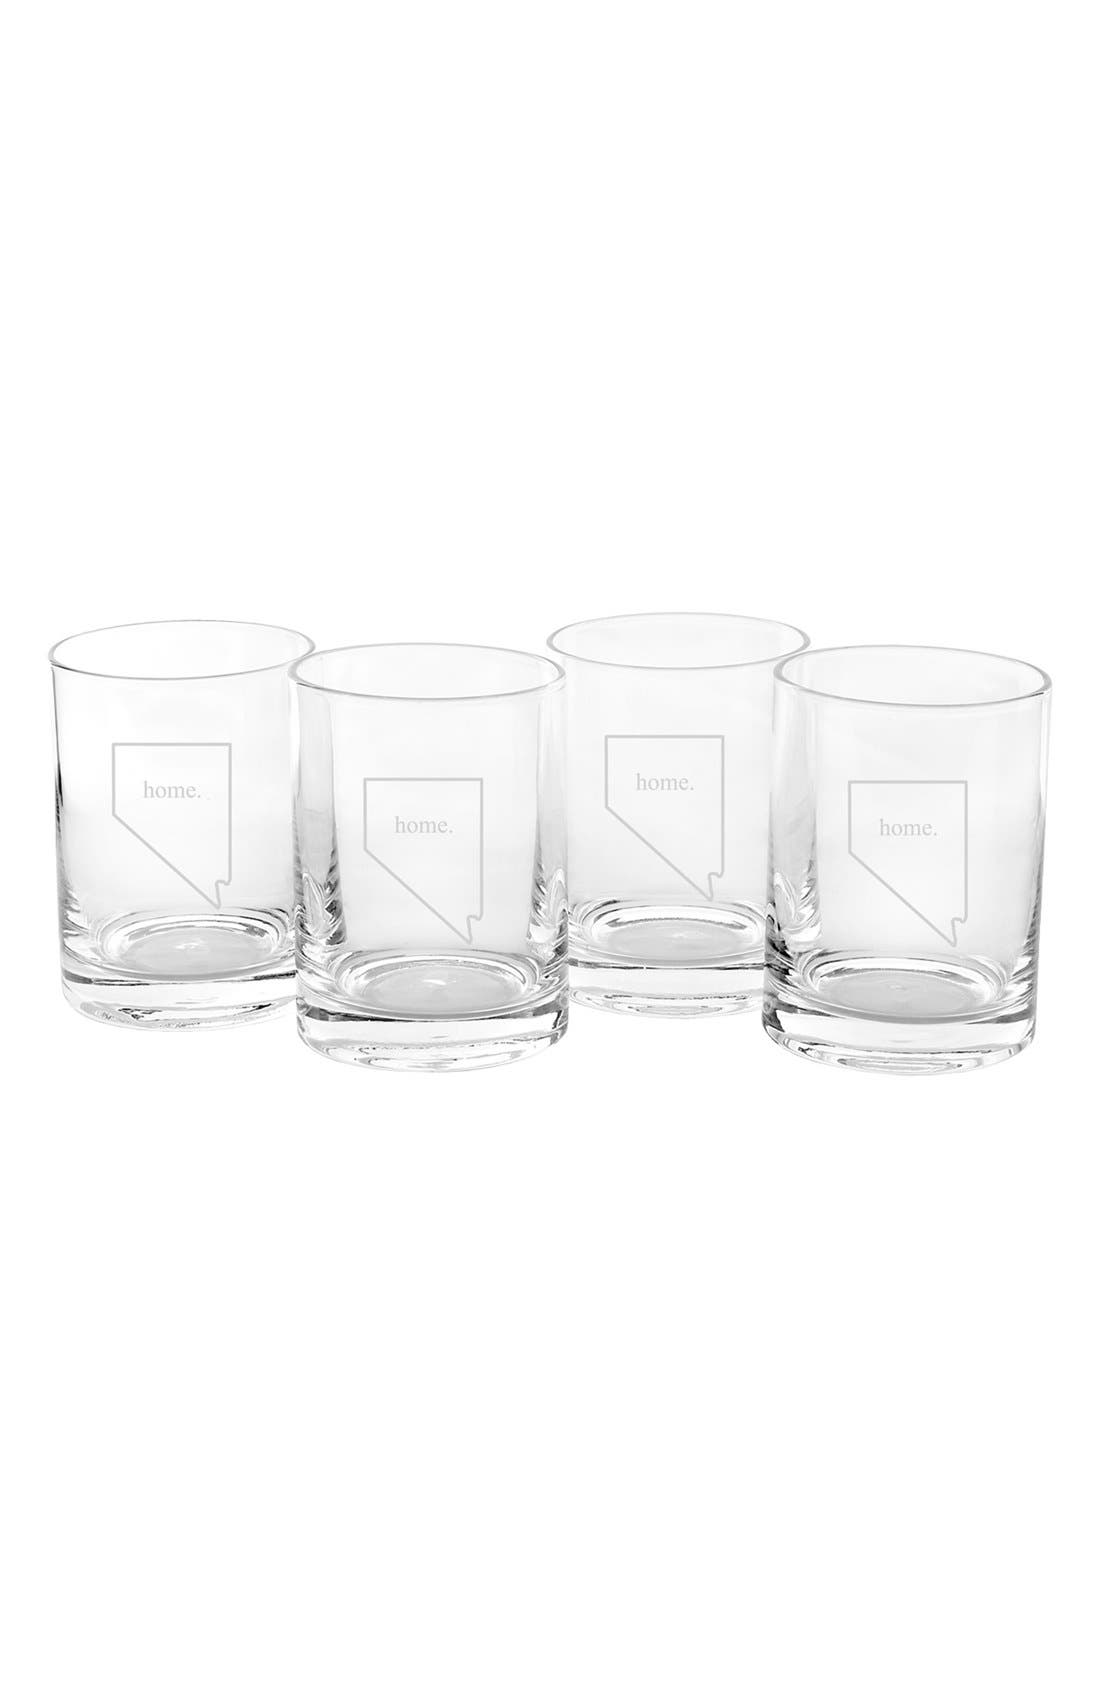 Alternate Image 1 Selected - Cathy's Concepts 'Home State' Glasses (Set of 4)